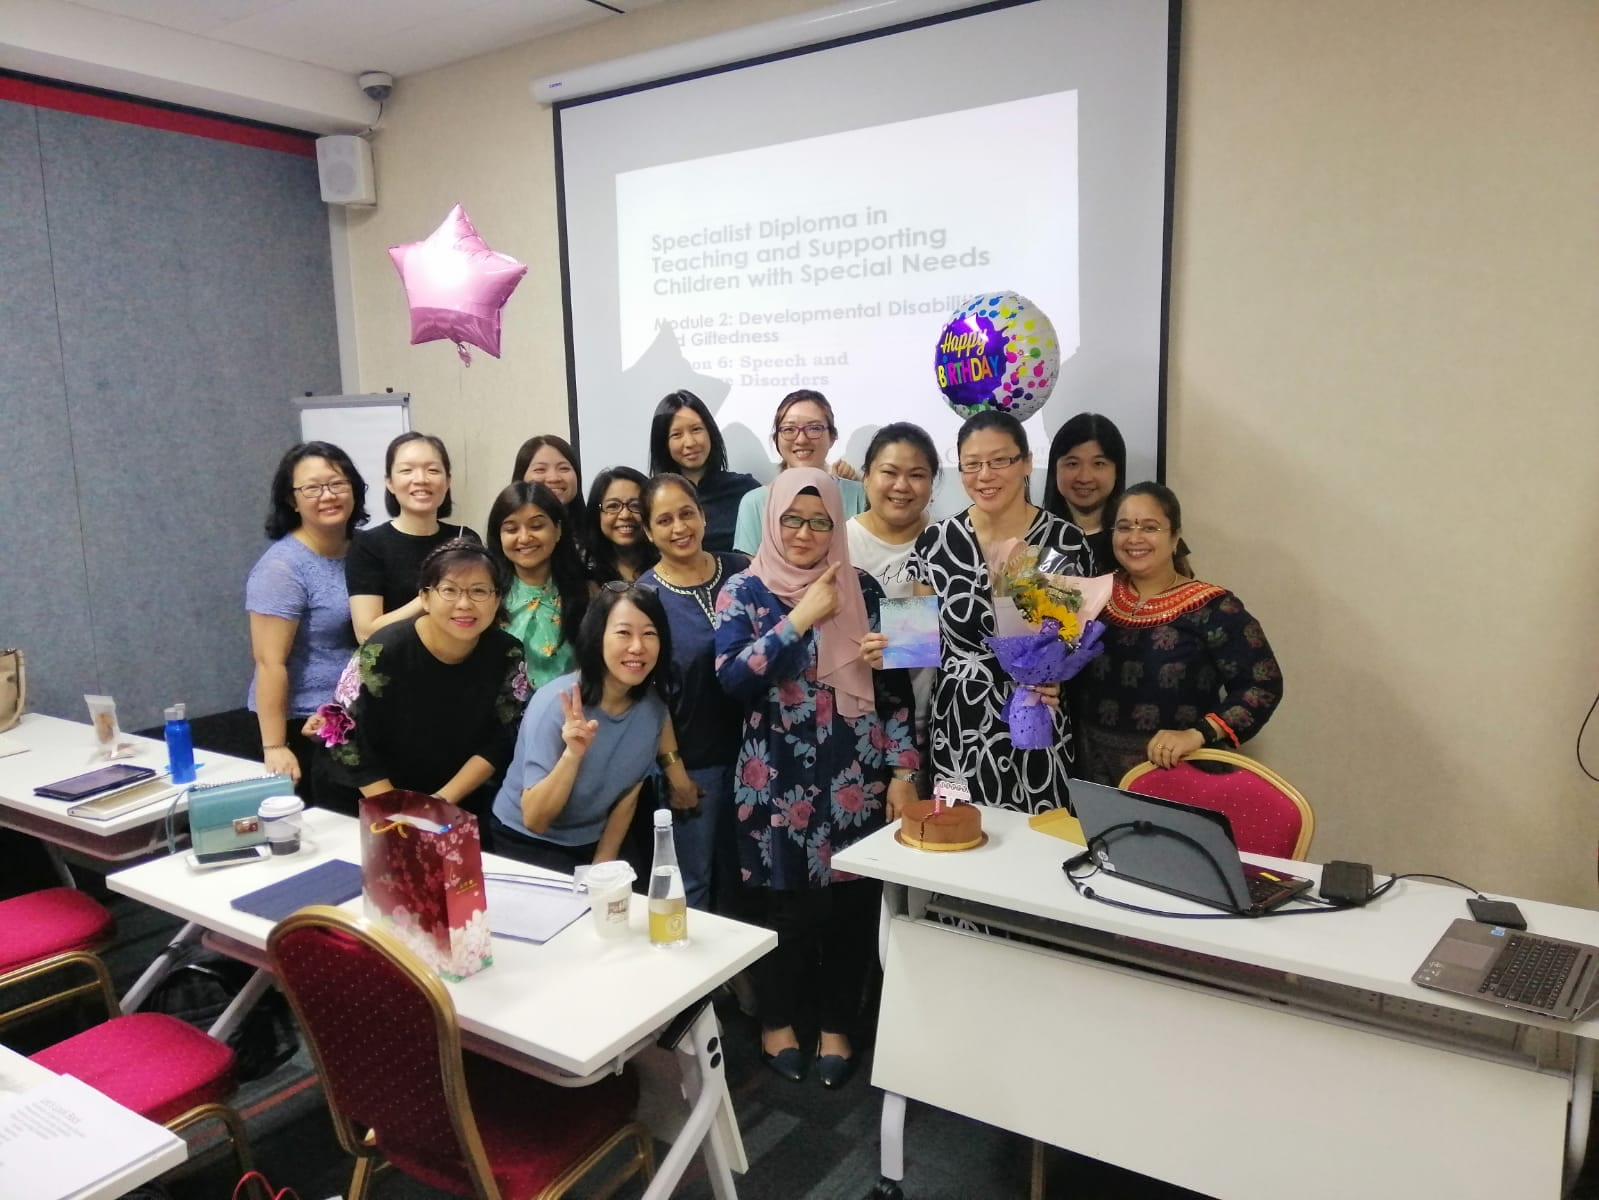 Specialist Diploma in Teaching Supporting Children with Special Needs Class Photo